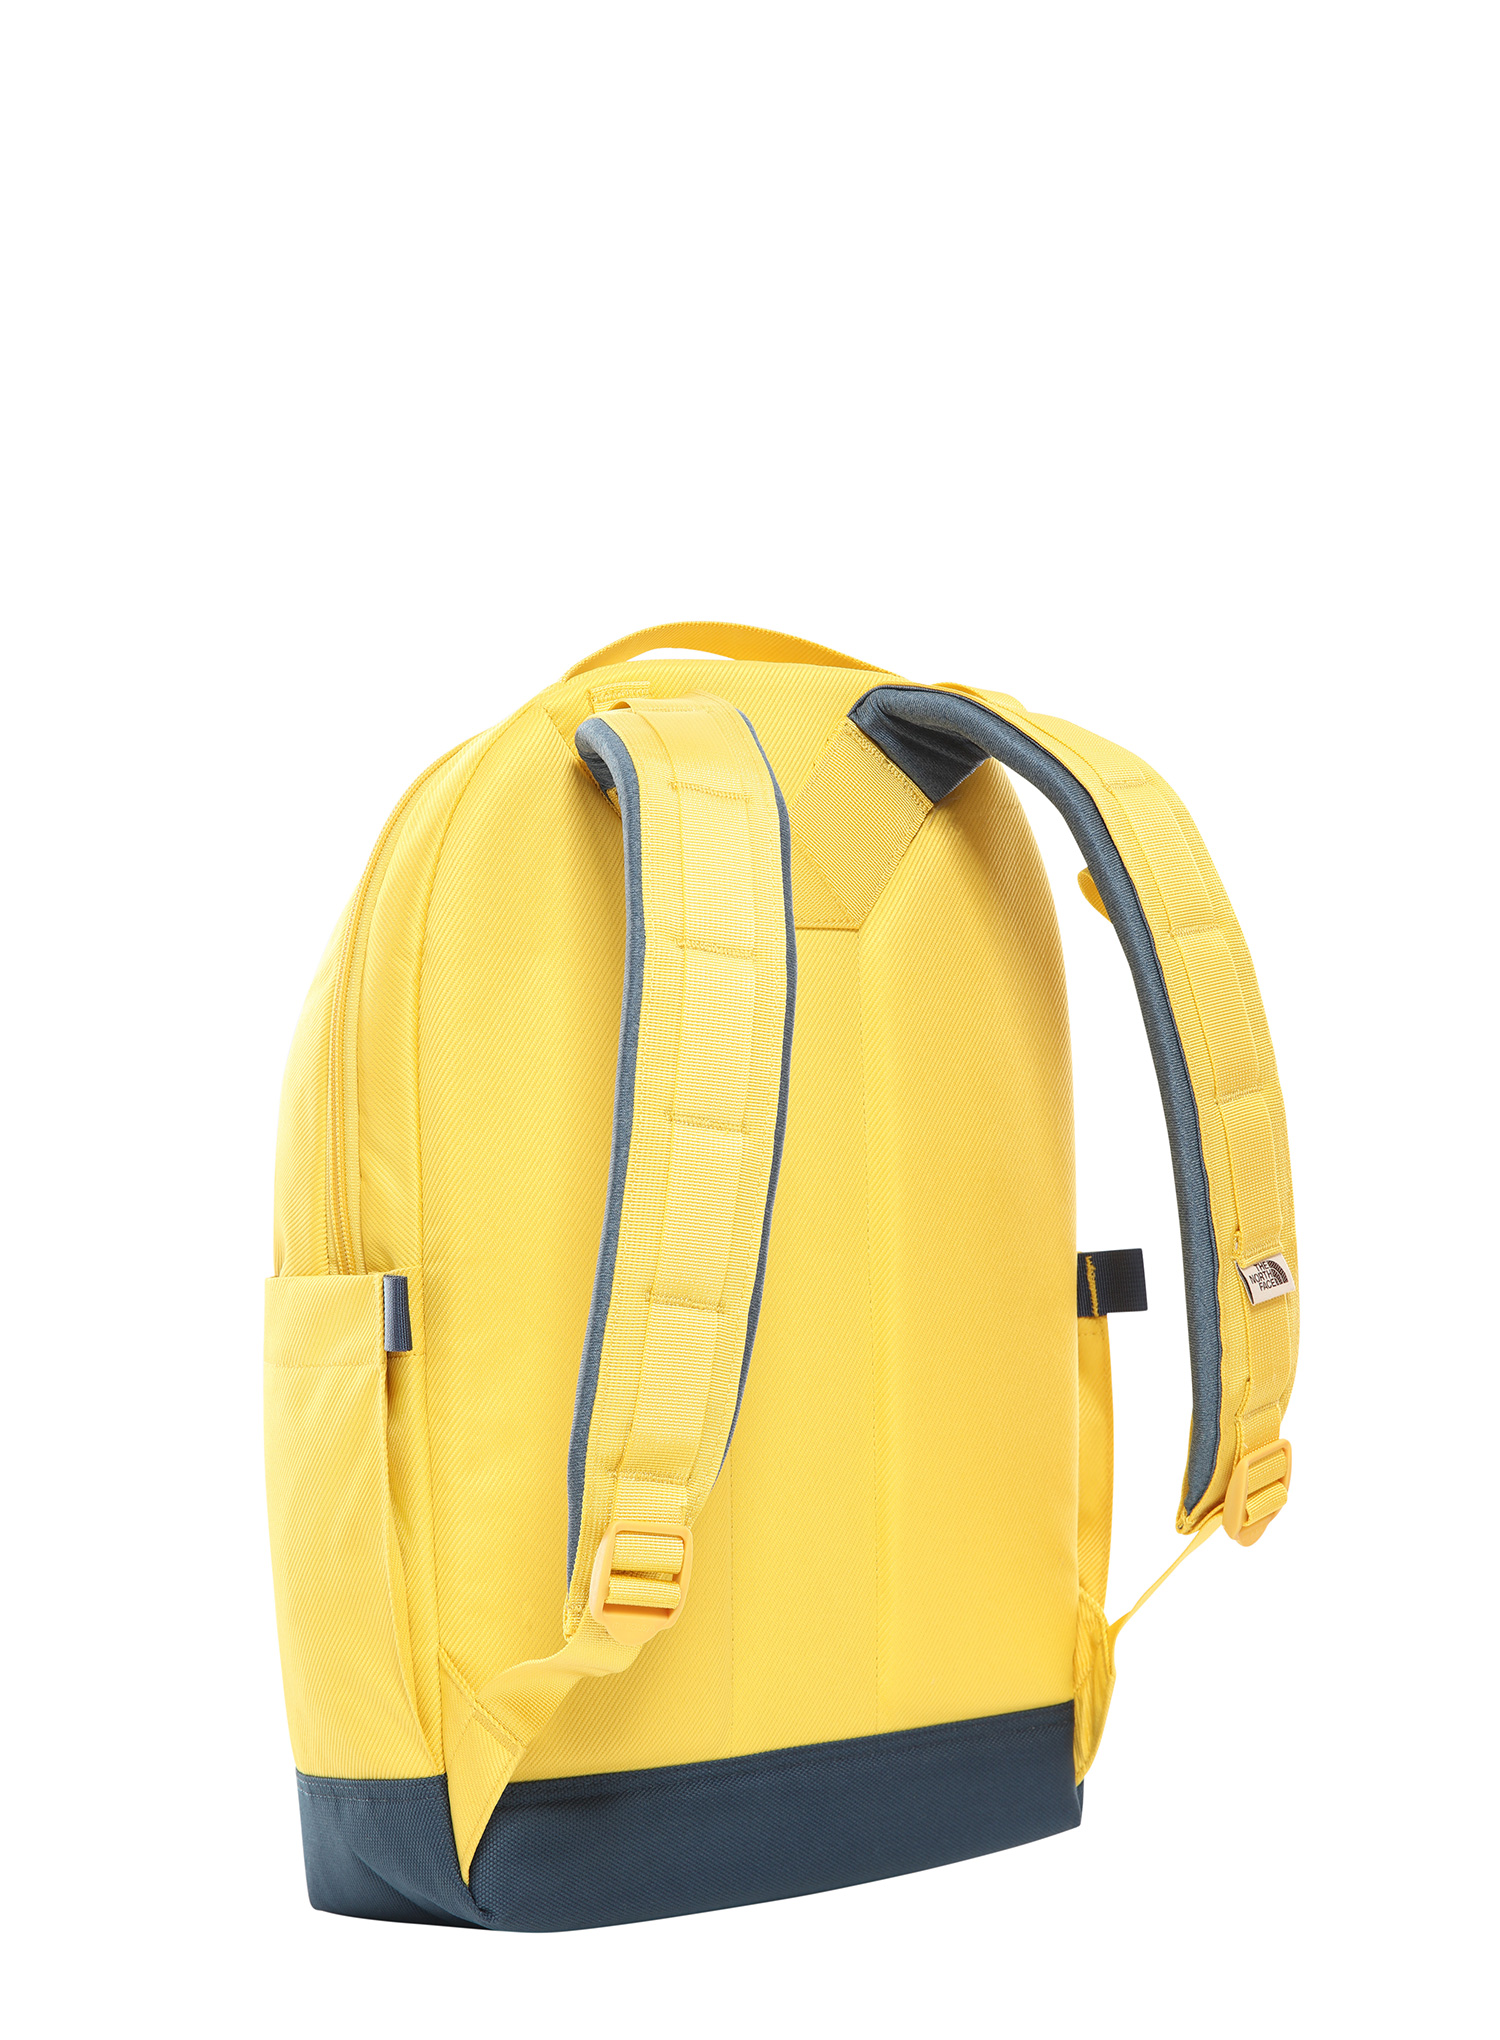 Plecak The North Face Daypack - bamboo yellow/blue - zdjęcie nr. 2